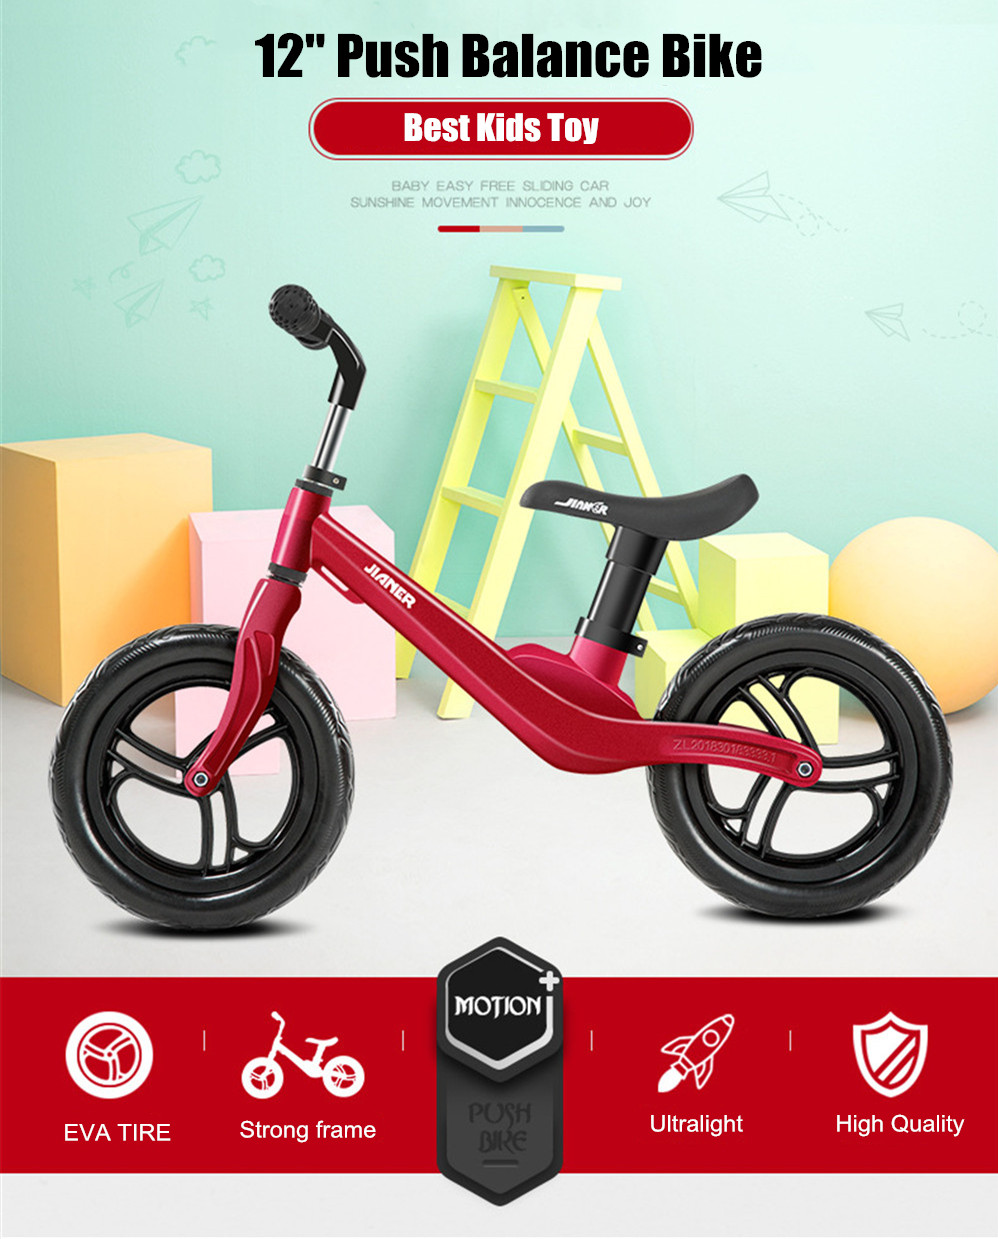 """HTB1XdwgbcrrK1RjSspaq6AREXXa1 12"""" Push Balance Bike Ultralight Kids Riding Bicycle for 1- 4 Years Baby Walker Scooter No-Pedal Learn To Ride Pre Bike EVA Tire"""